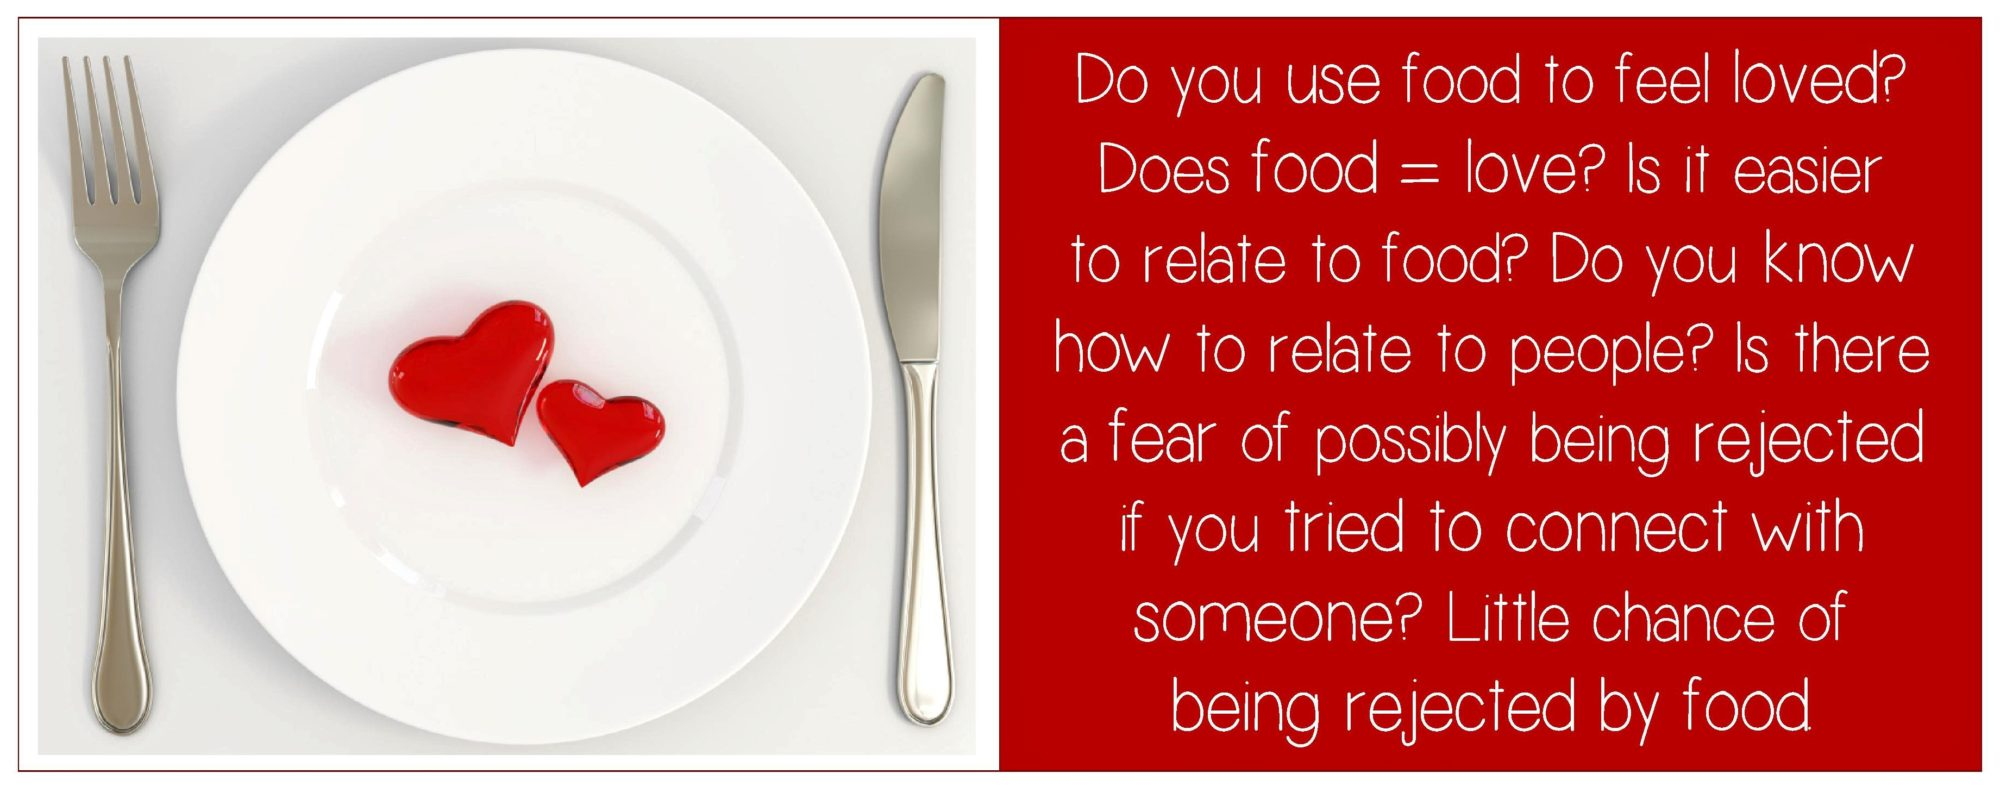 Do you use food to feel loved Question